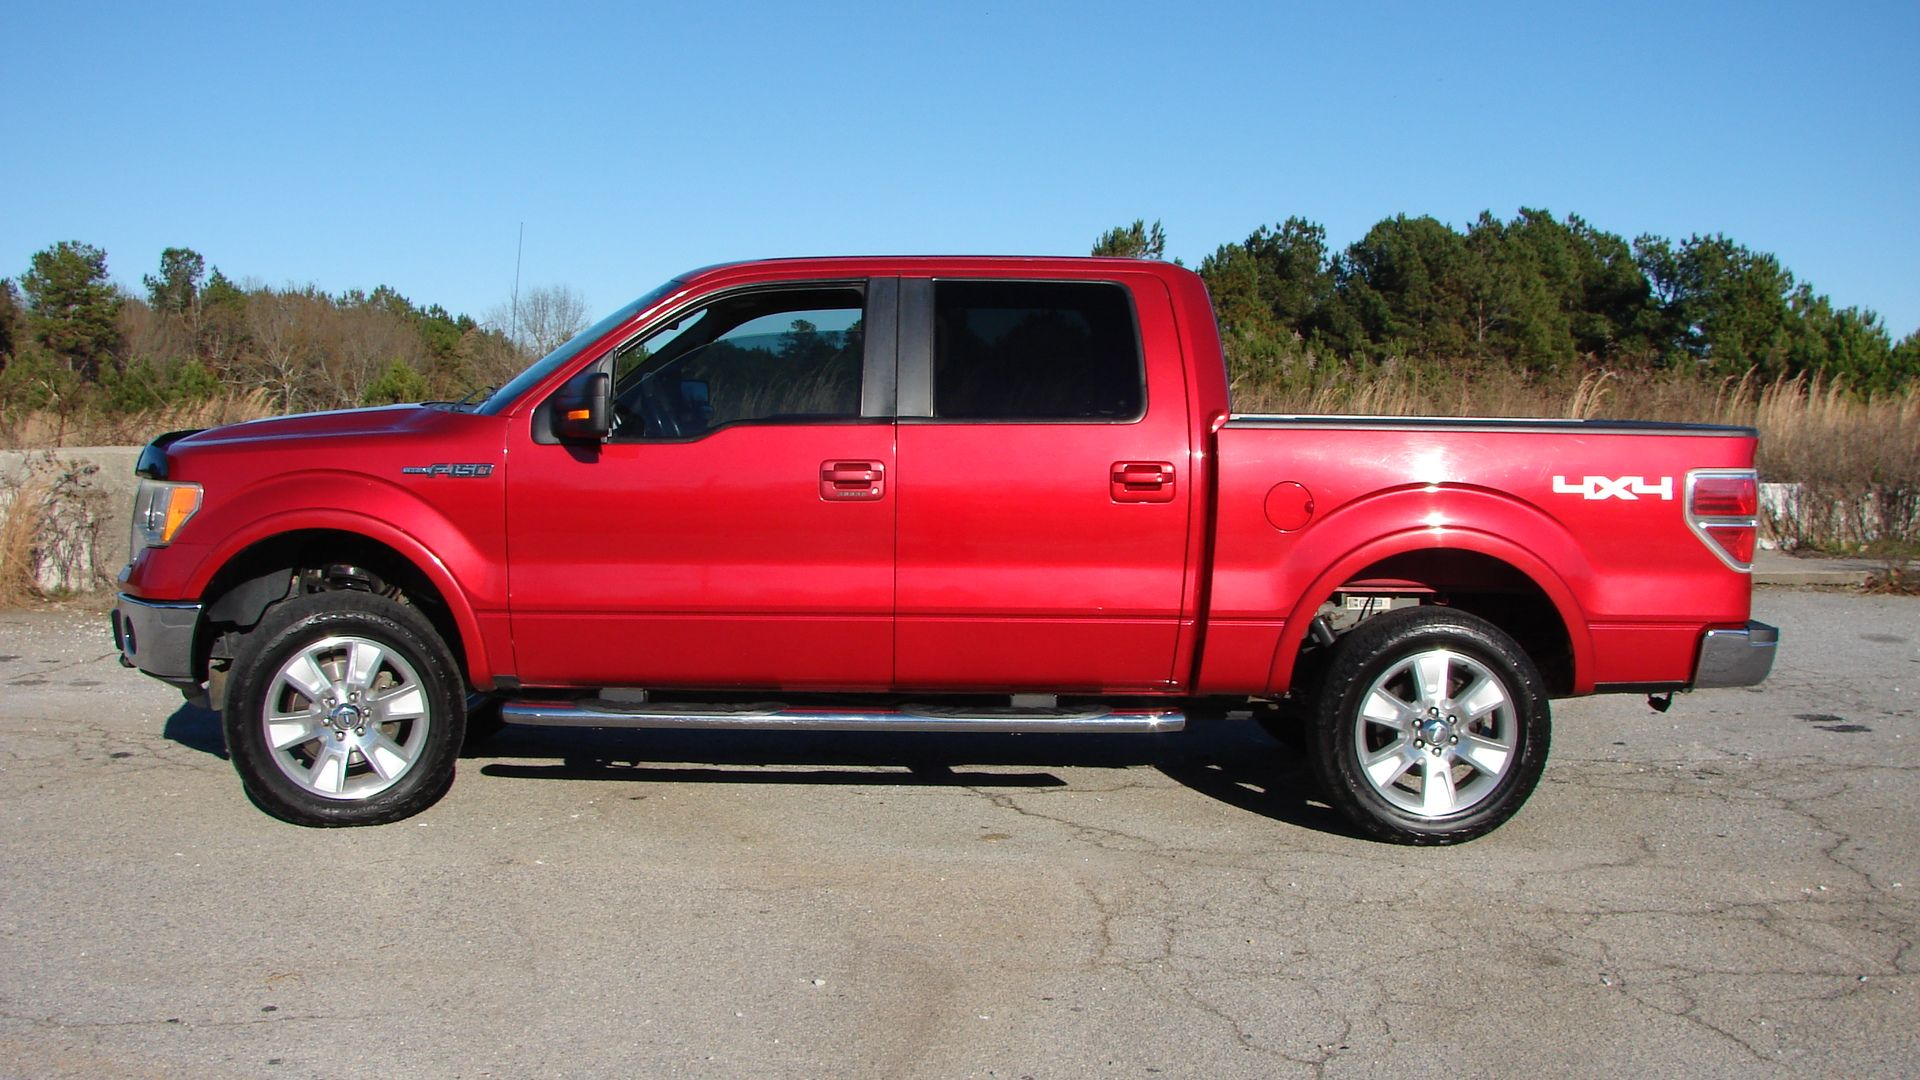 2010 Ford F 150 4x4 Lariat With A 5 4l 8 Cylinder Flex Fuel